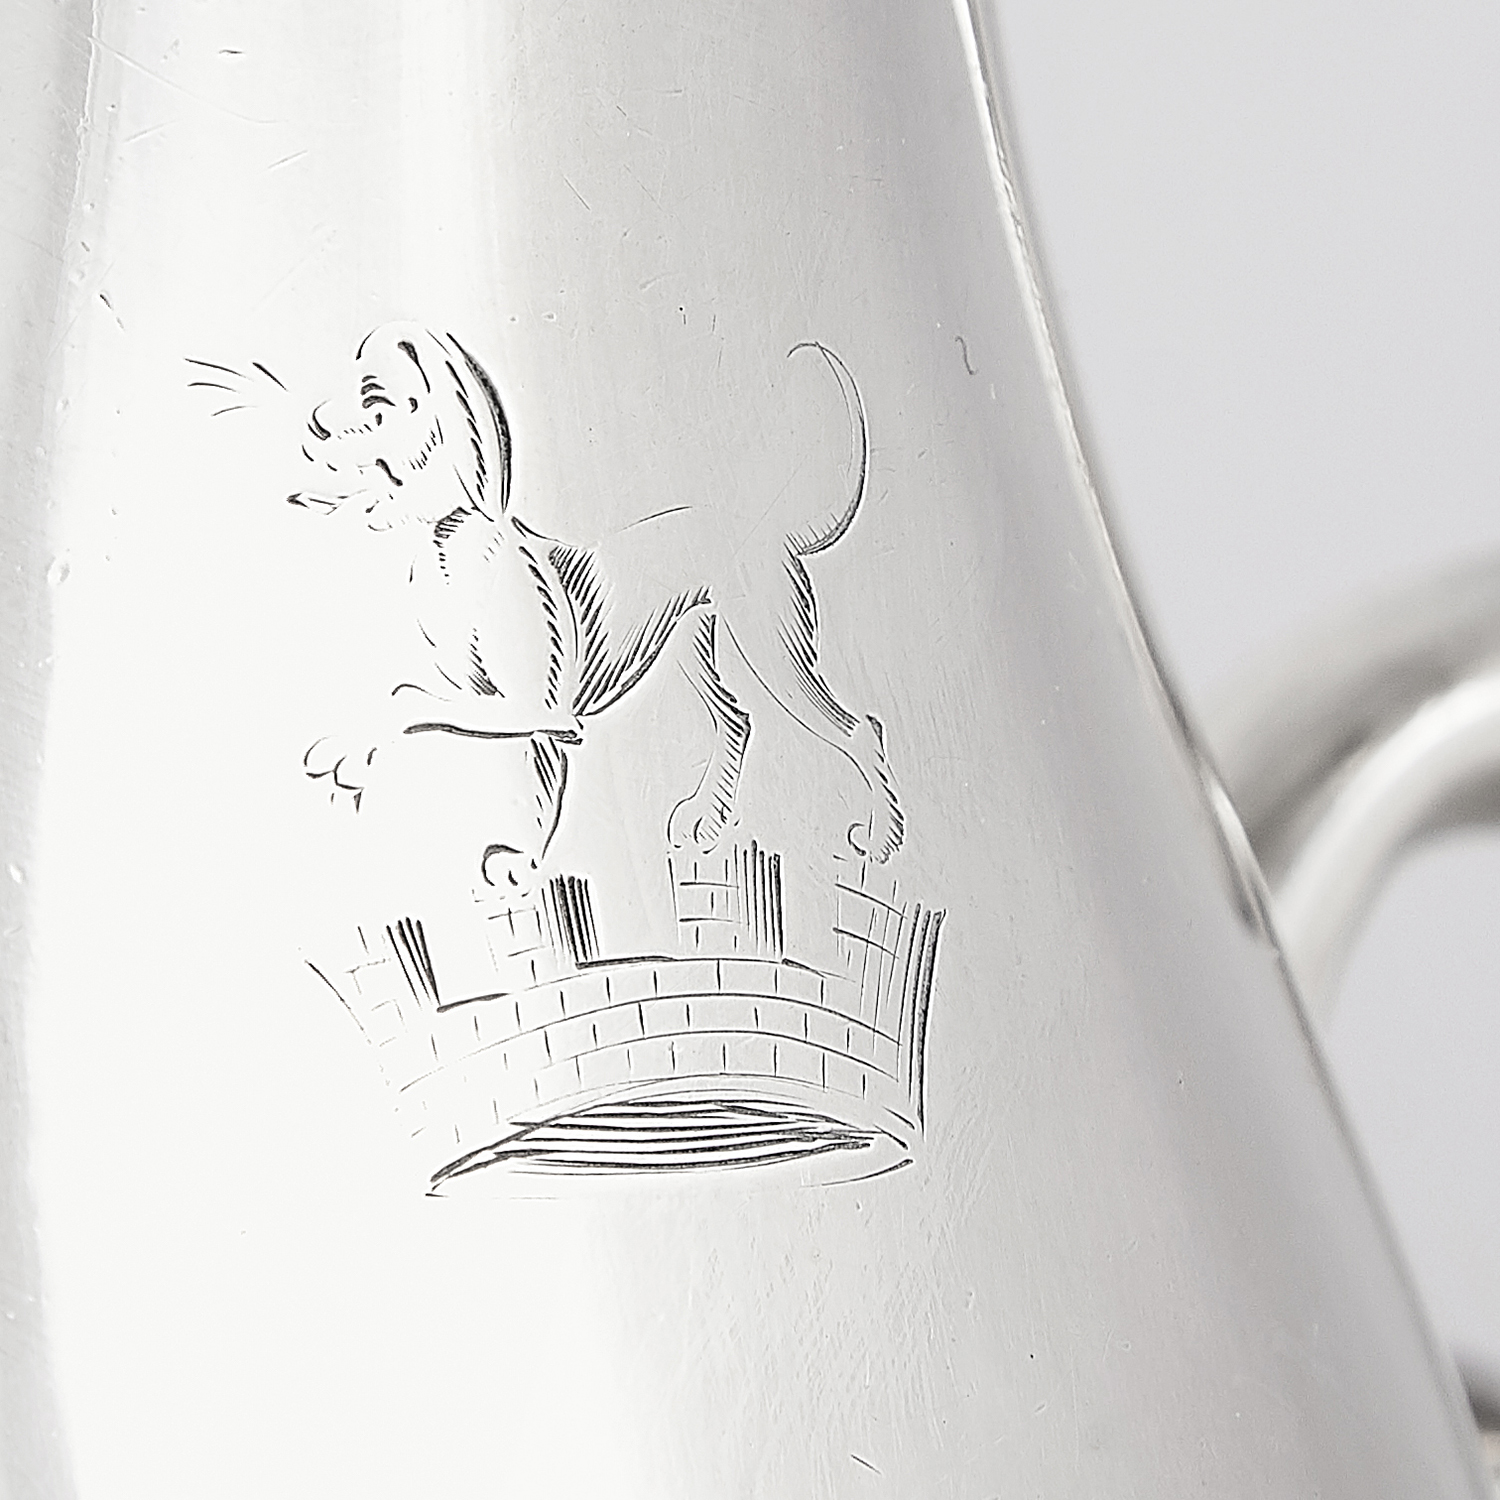 Los 8 - ANTIQUE GEORGE III IRISH STERLING SILVER BEER JUG PROBABLY AMBROSE BOXWELL, DUBLIN 1774 the baluster